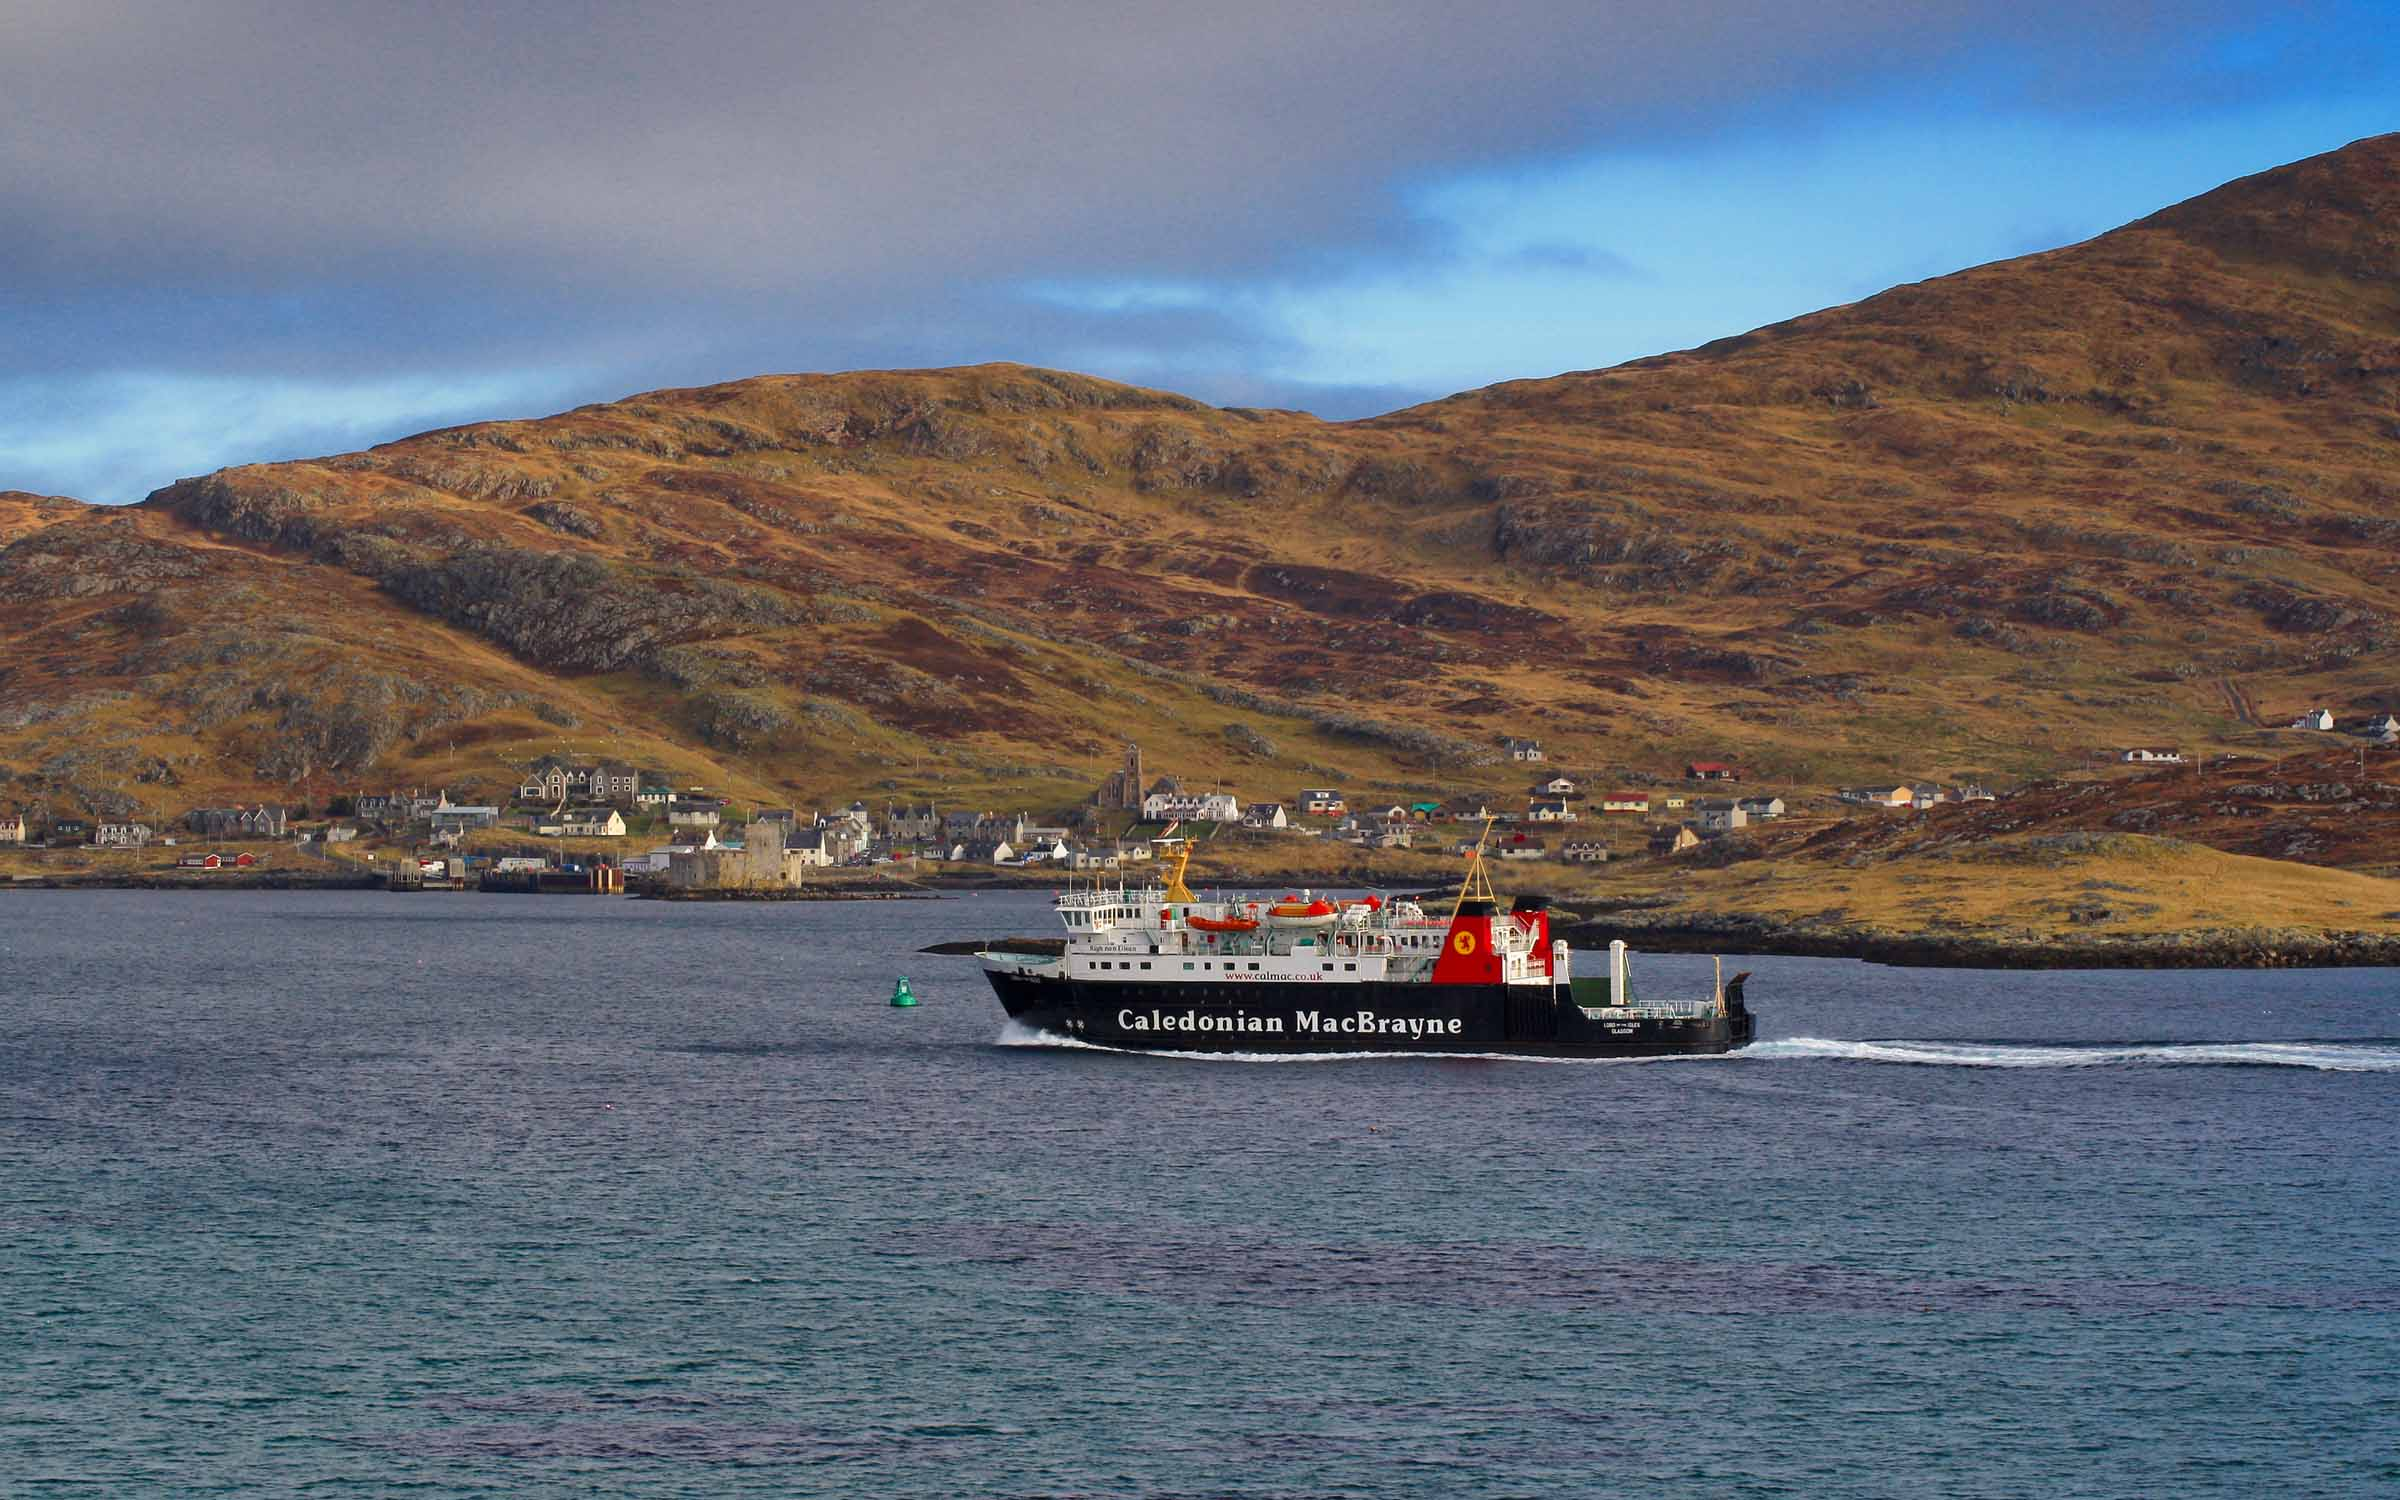 Lord of the Isles approaching Castlebay (Ships of CalMac)